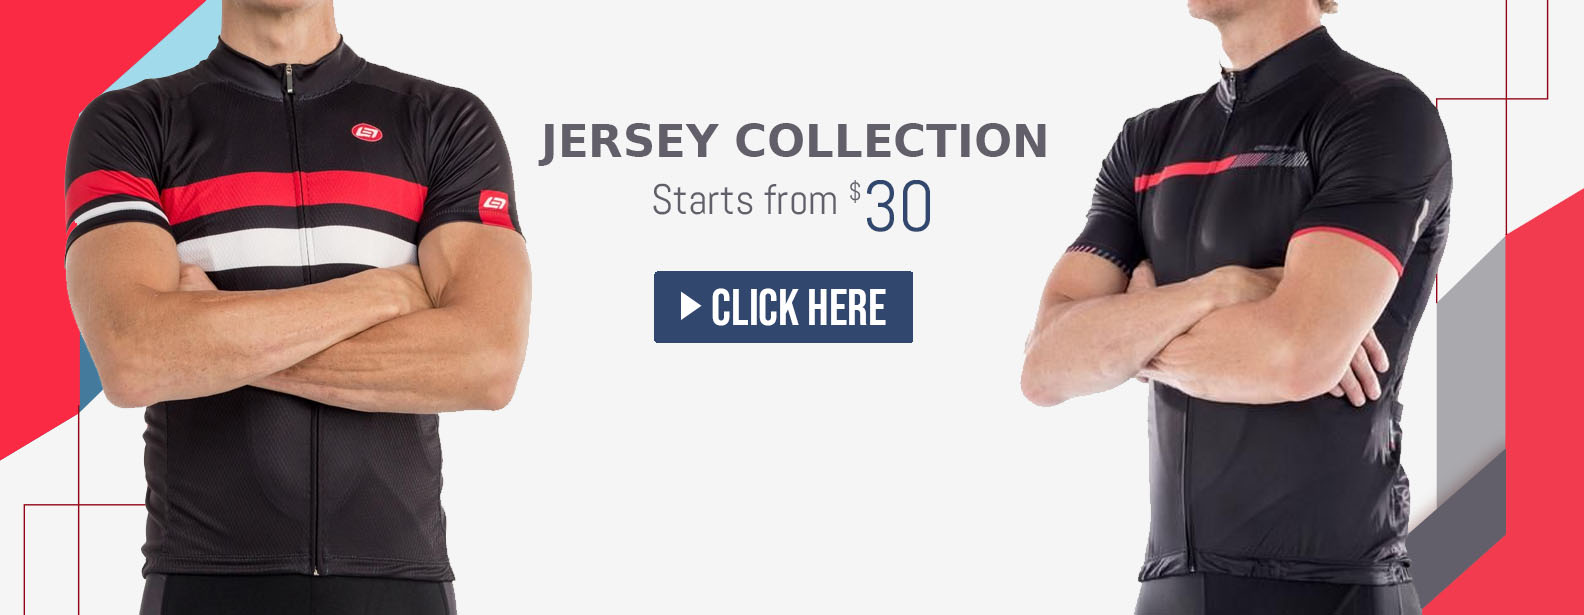 Buy Jersey Collection